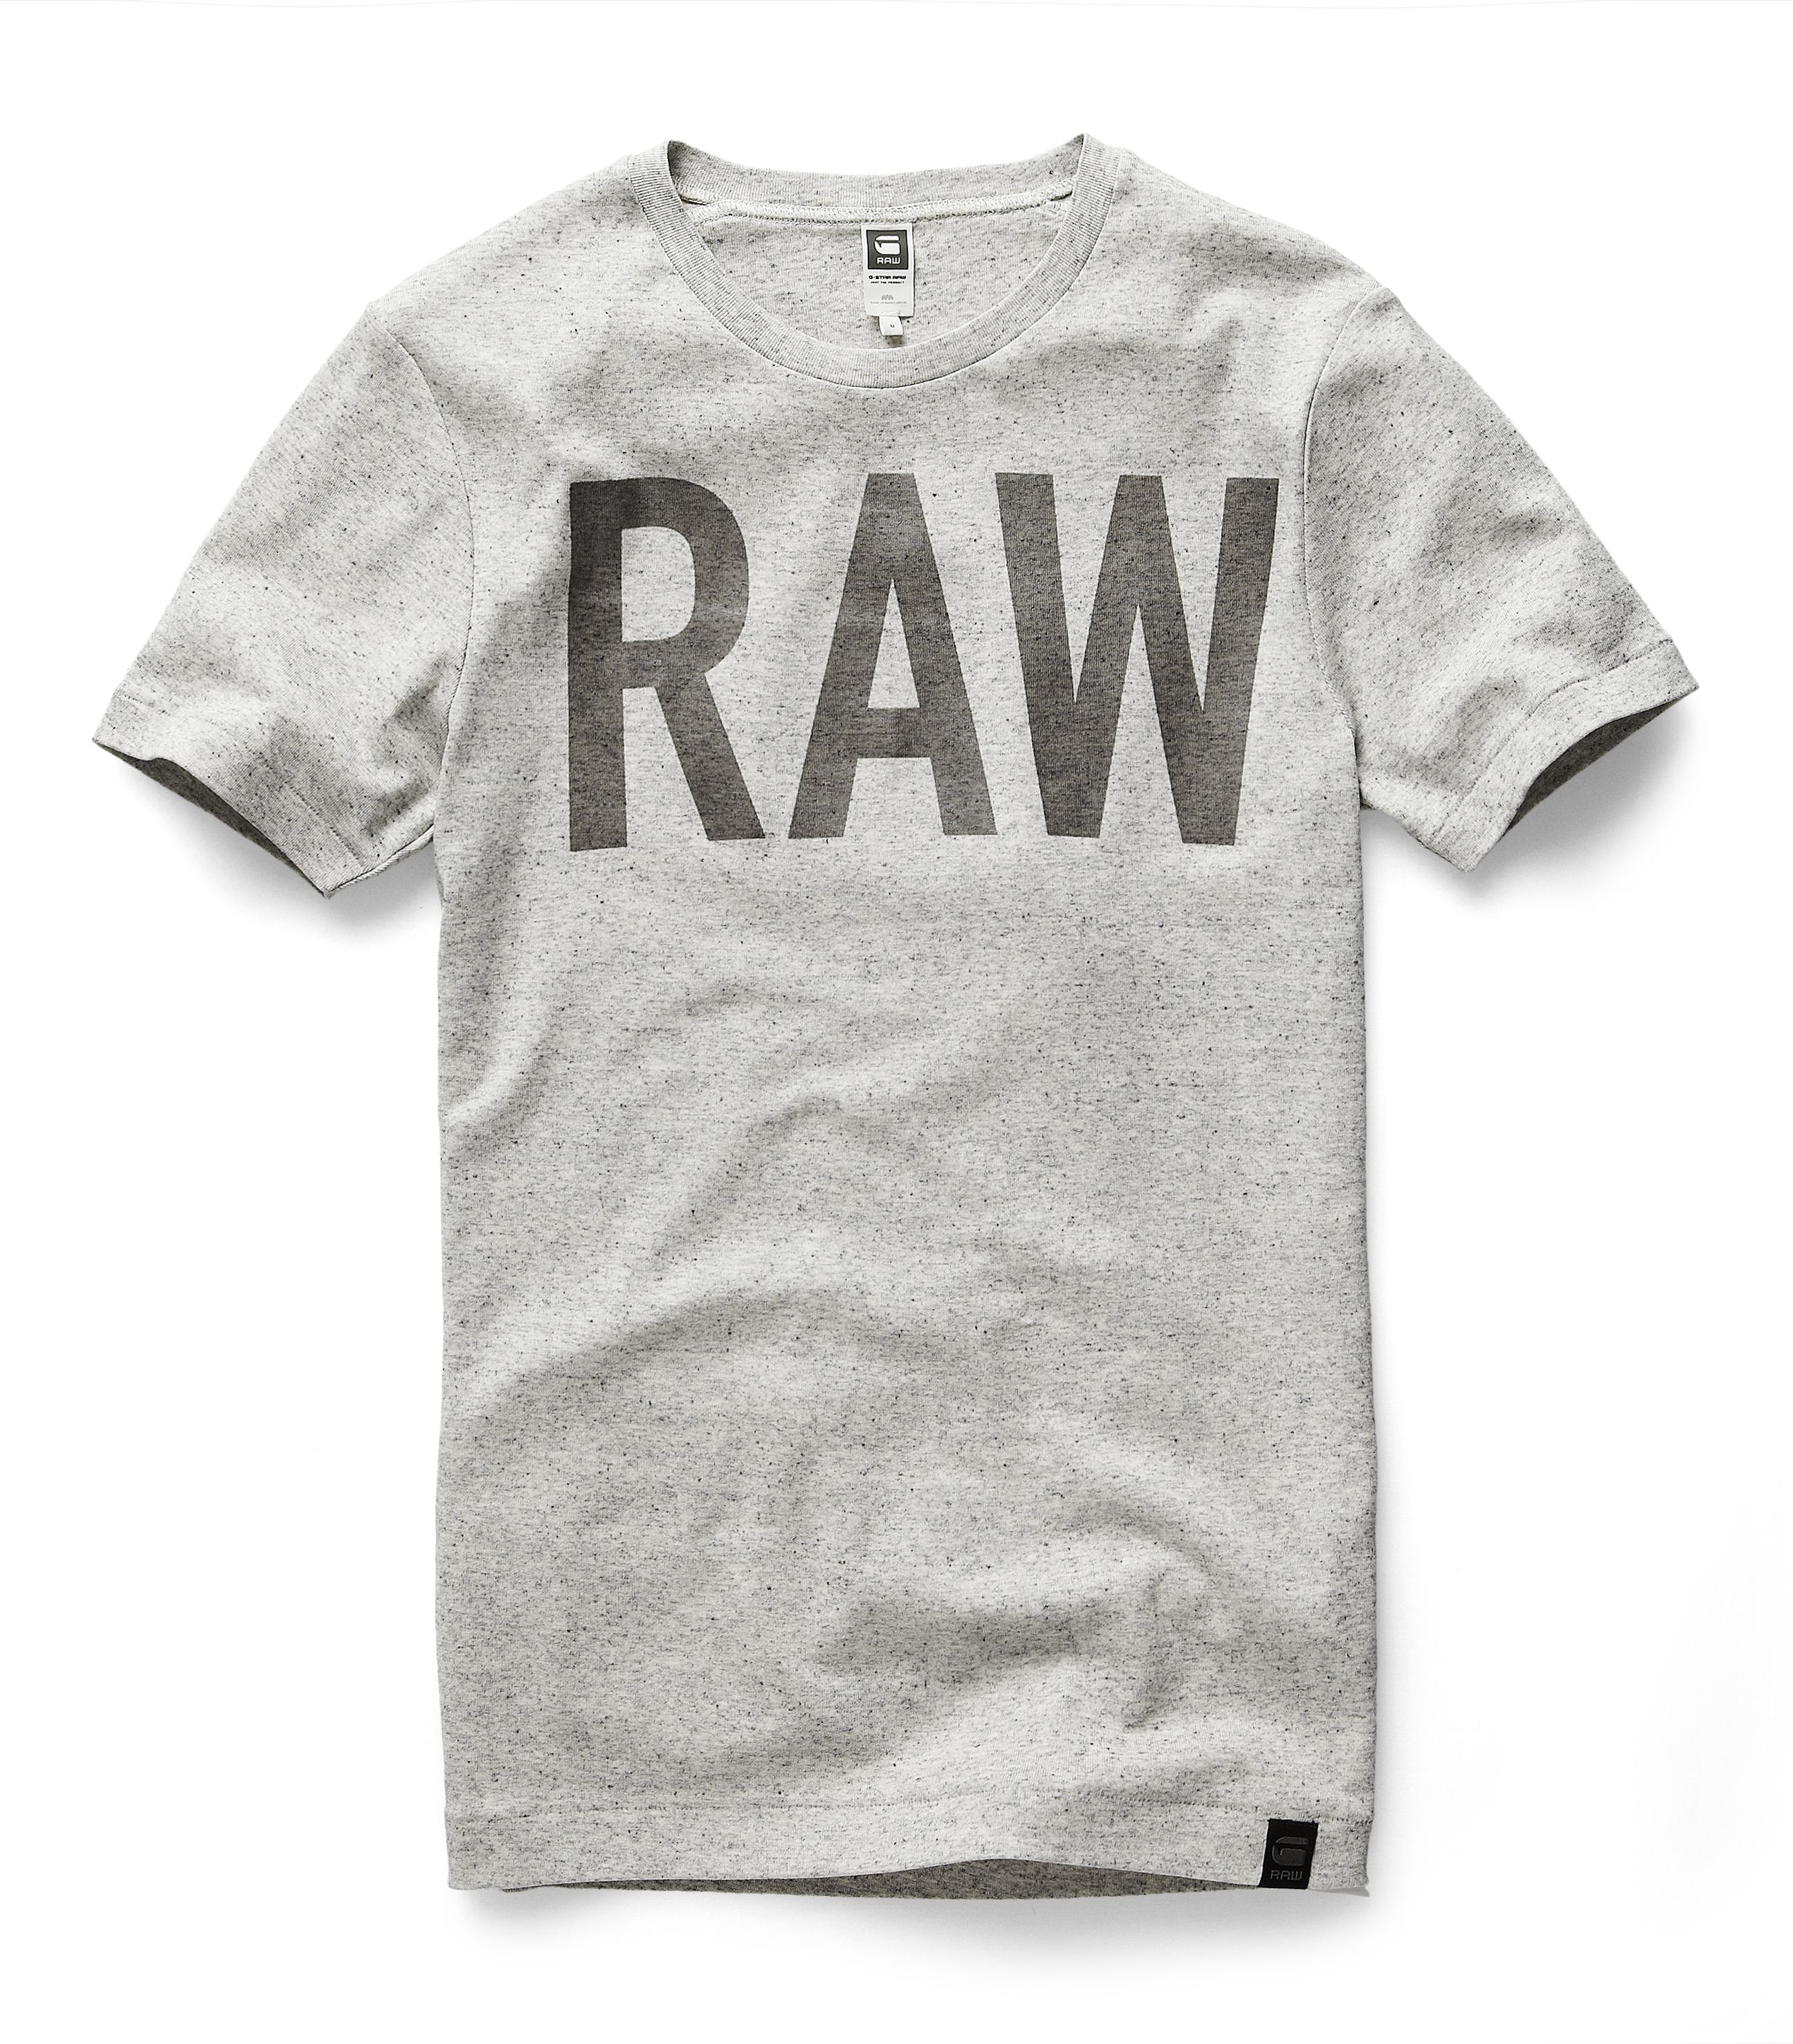 Round Neck Tee With A Semi-transparent Graphic Logo. The